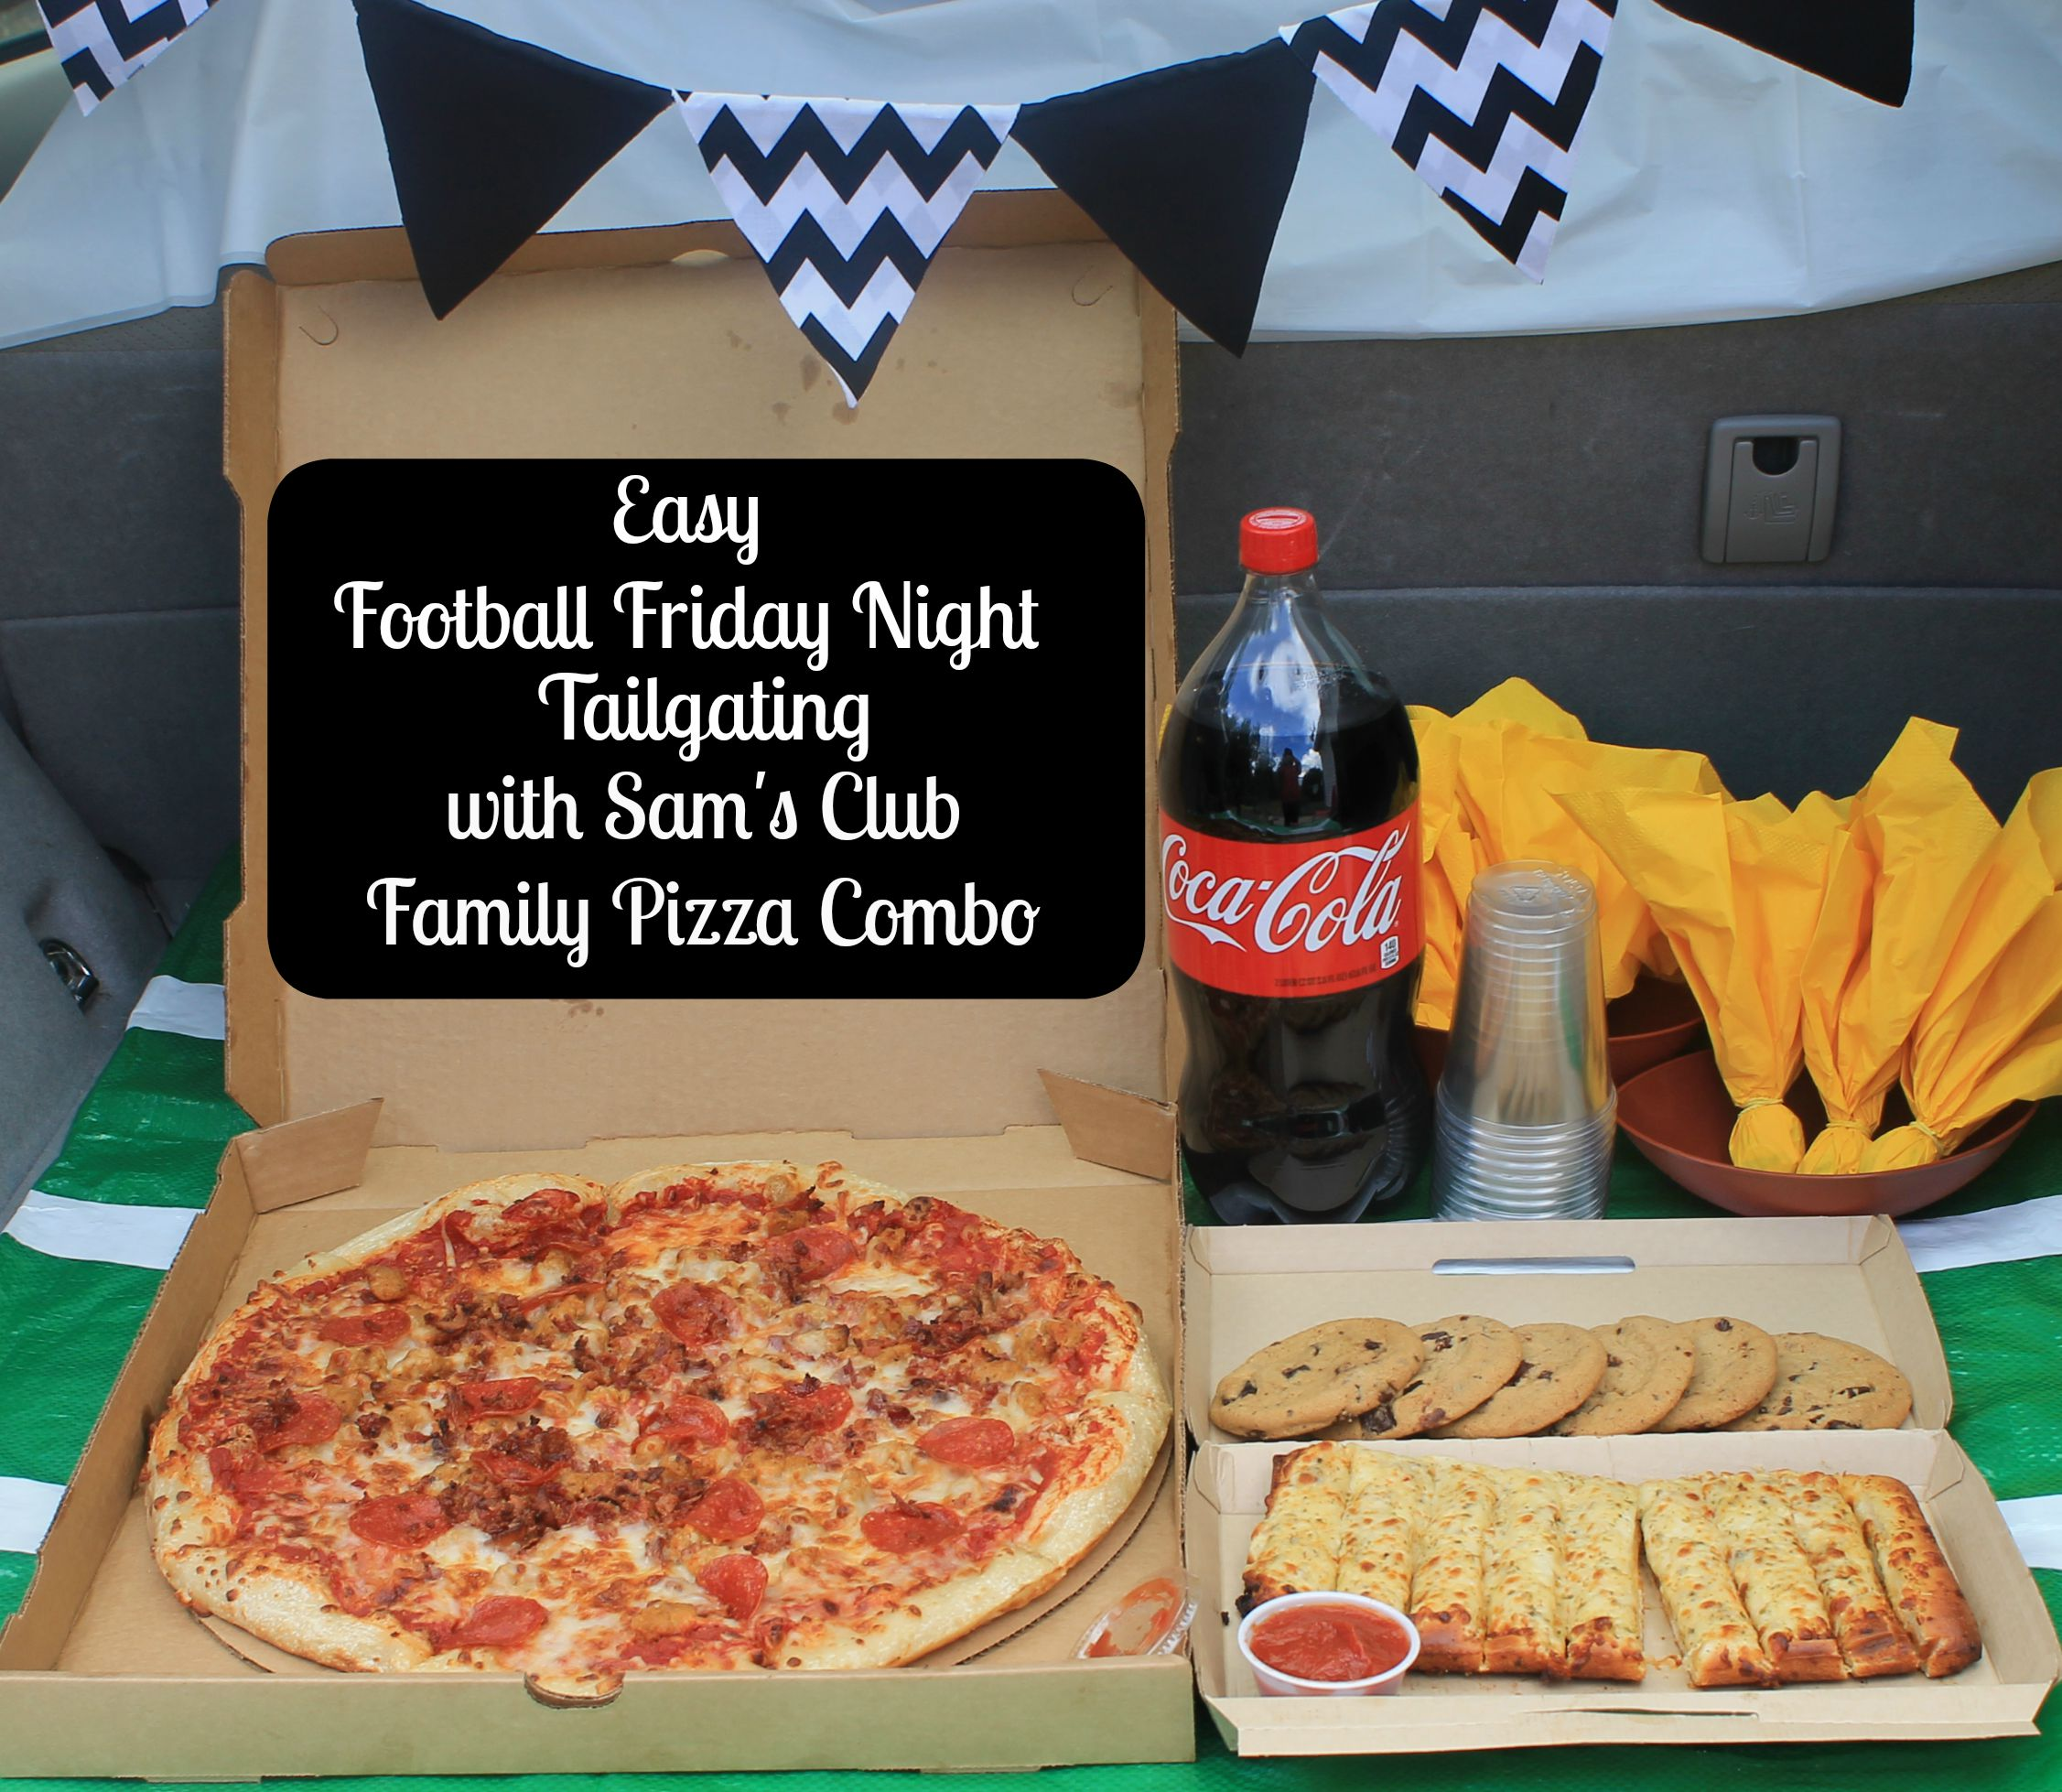 Easy Football Friday Night Tailgating with Sam's Club Family Pizza Combo.www.intelligentdomestications.com